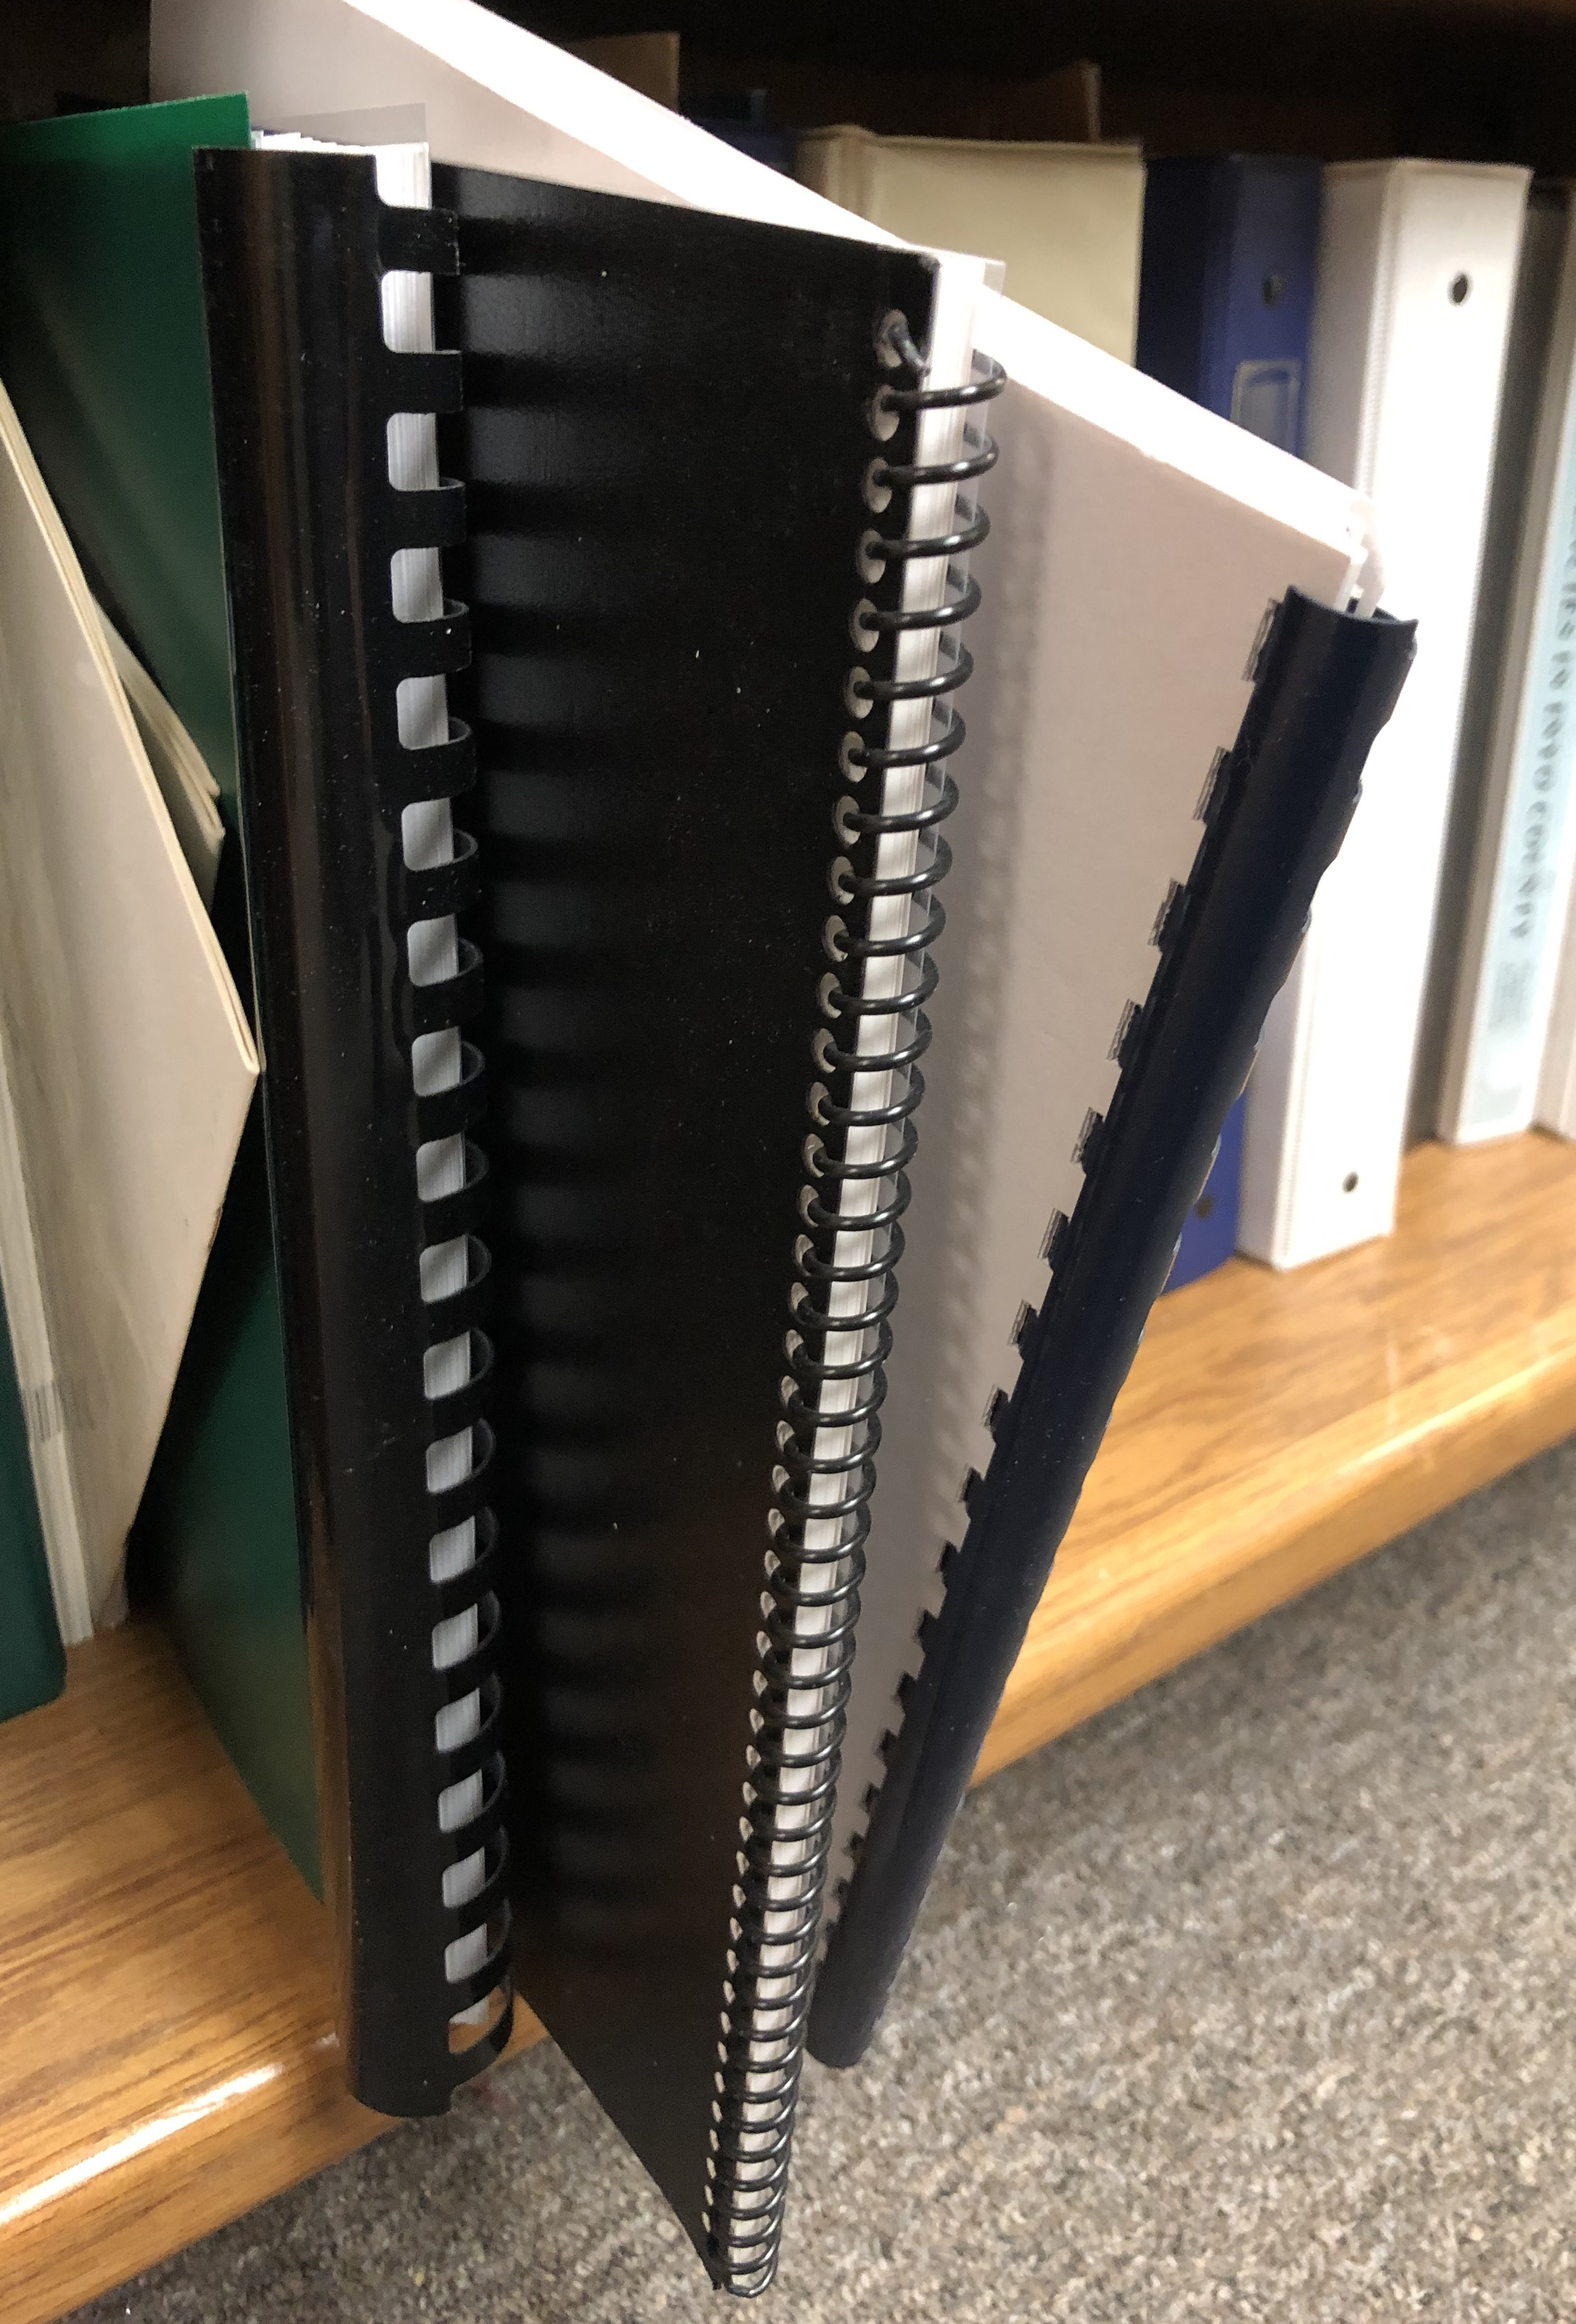 Multi-sized spiral-bound reports sticking out from bottom level of book shelf.